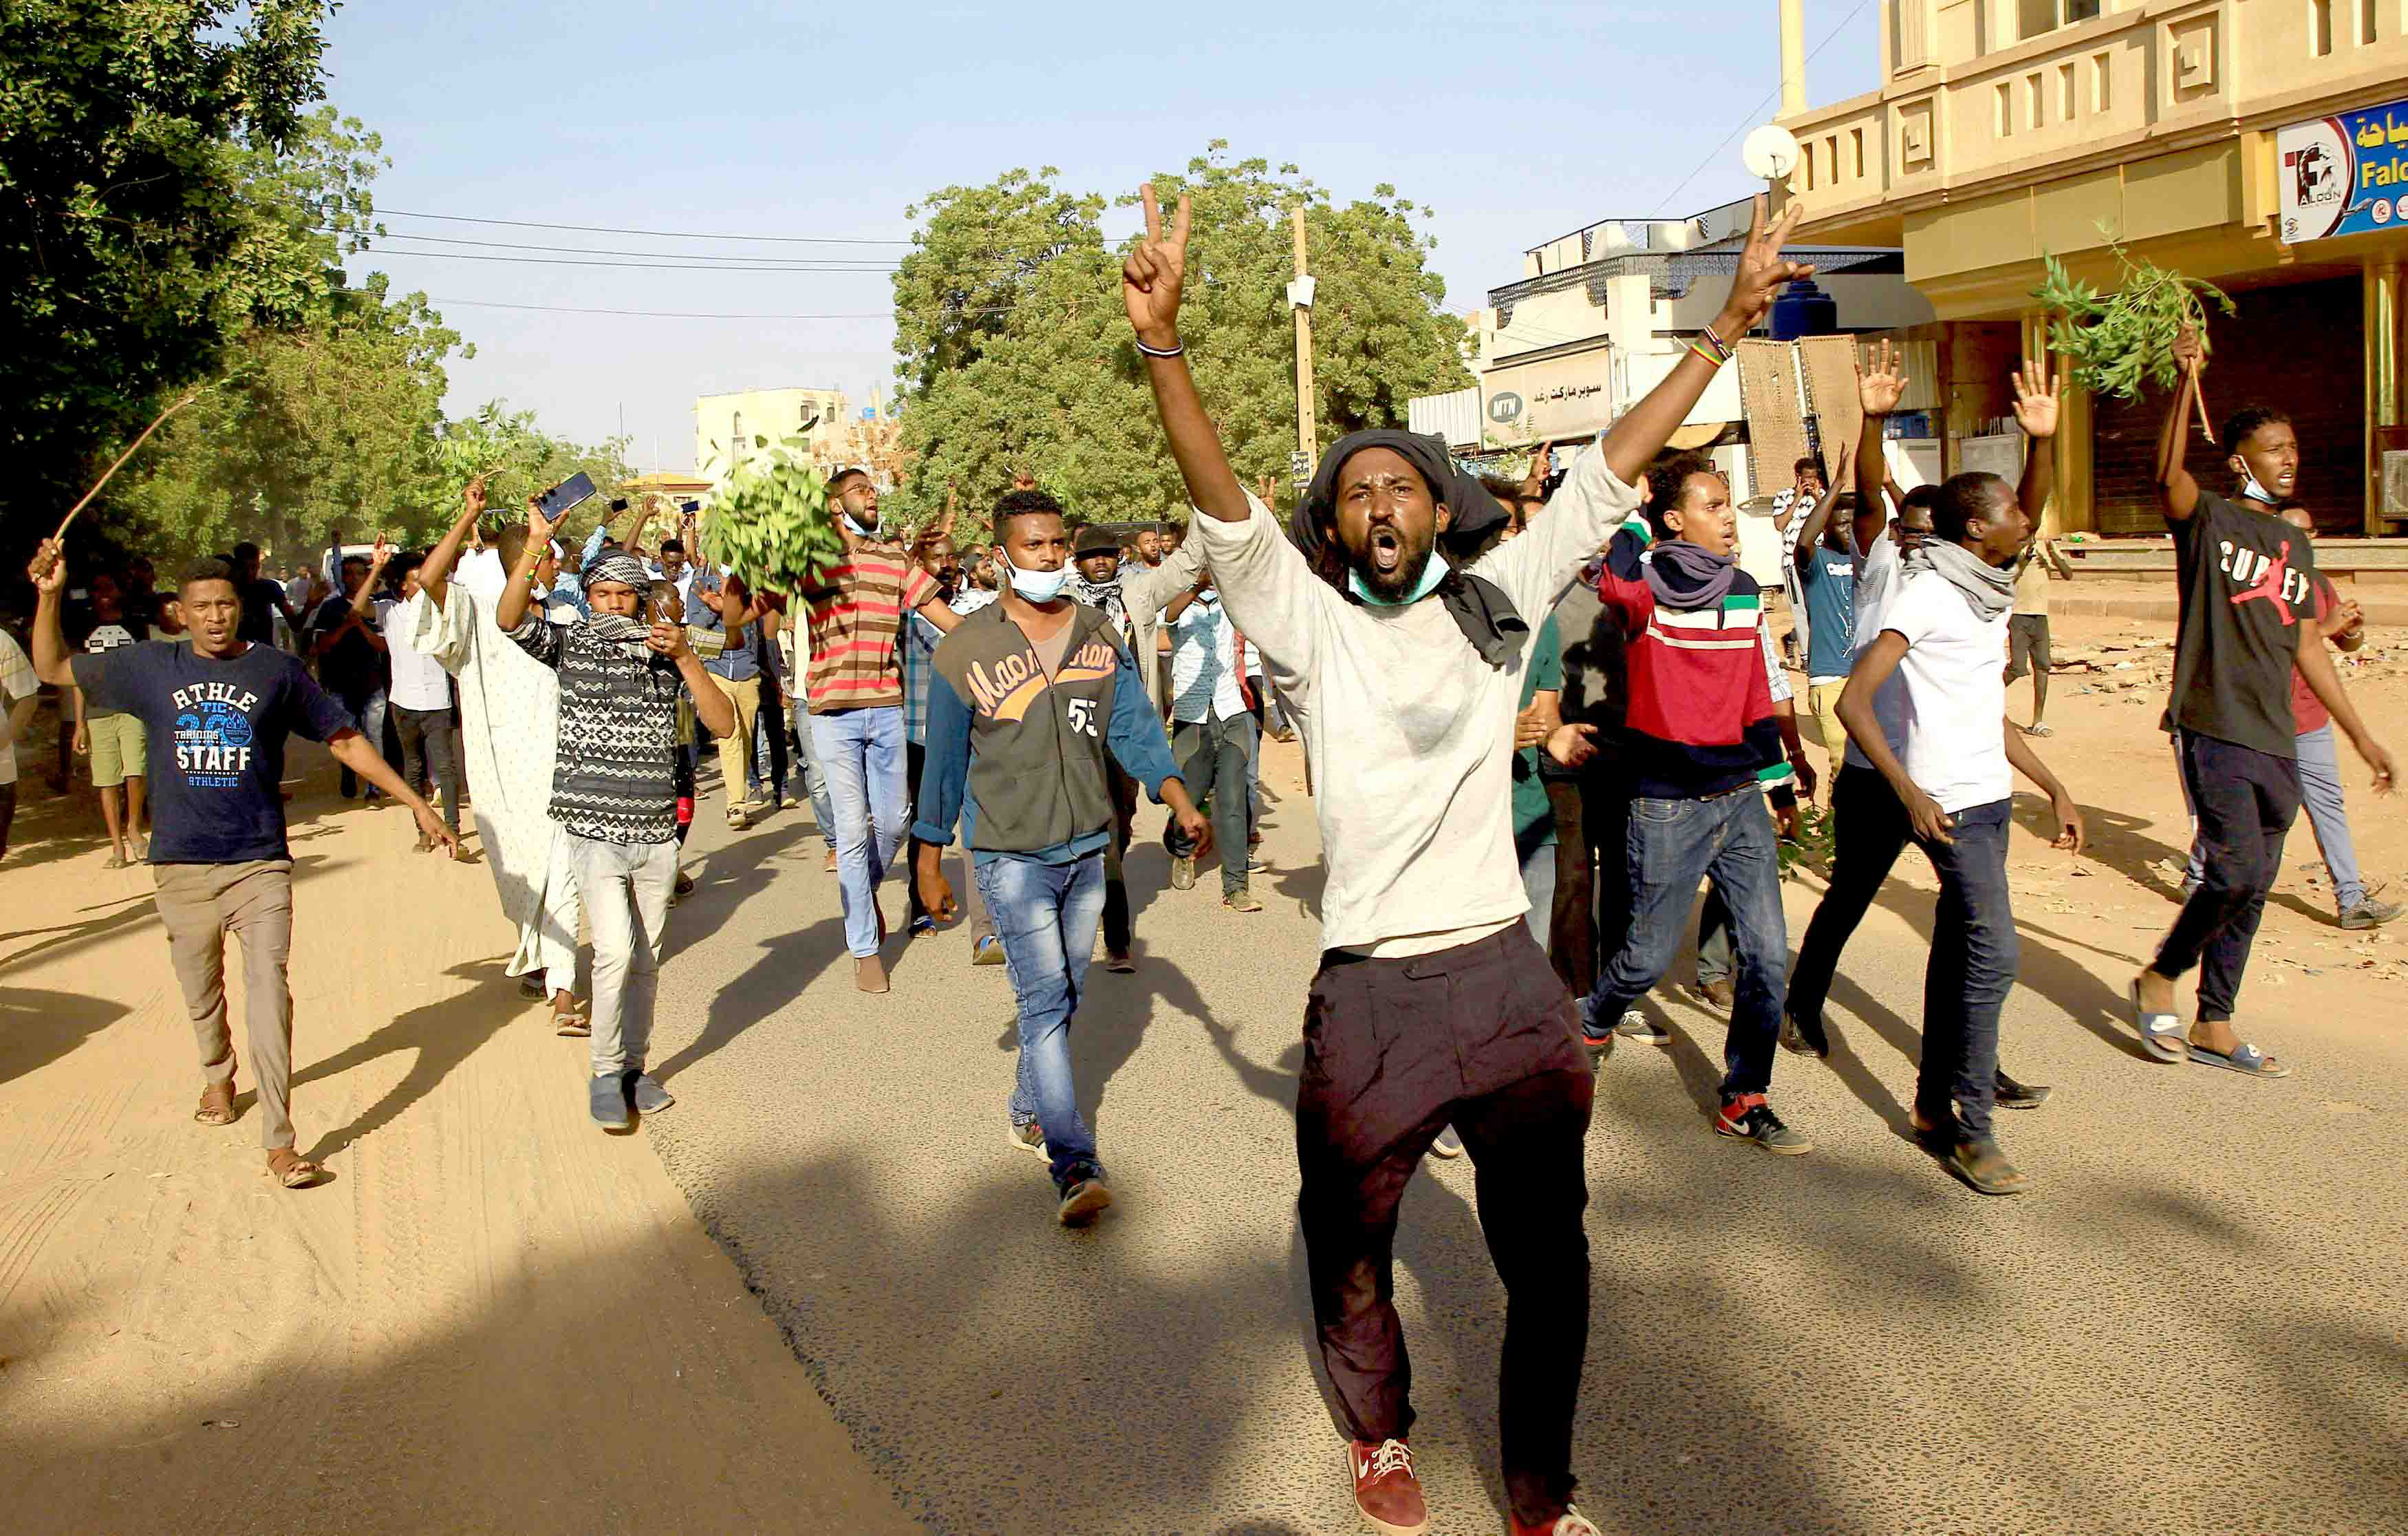 Sudanese protesters chant slogans as they march during anti-government demonstration in Khartoum, December 25. (Reuters)